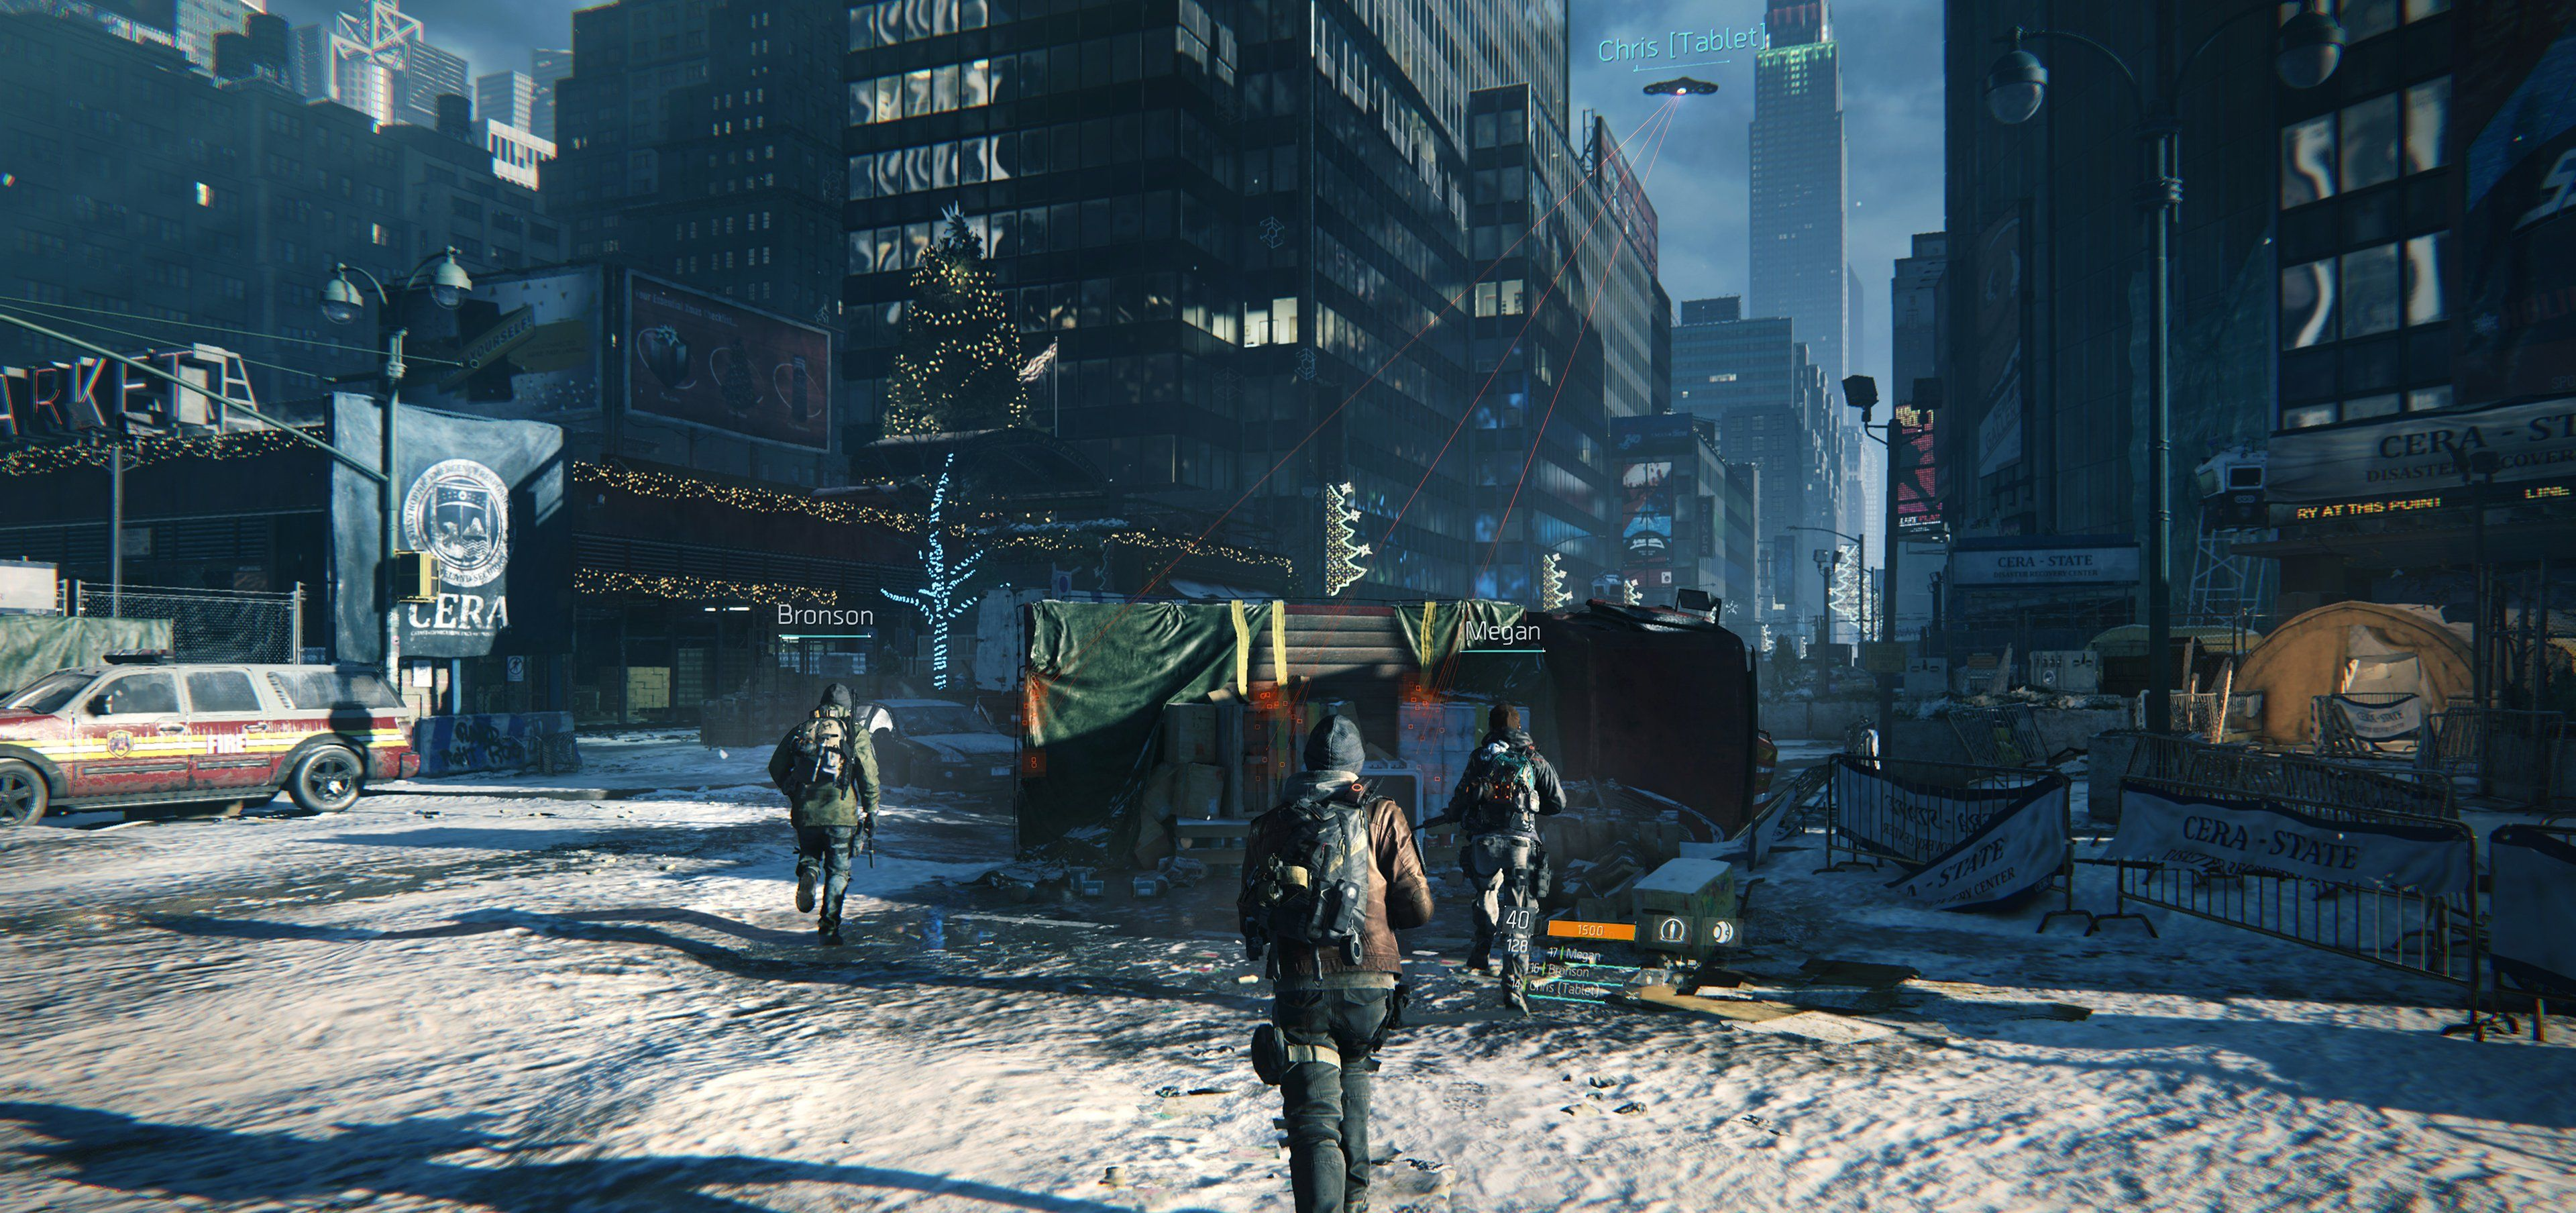 Tom Clancy's The Division (PC) - 10